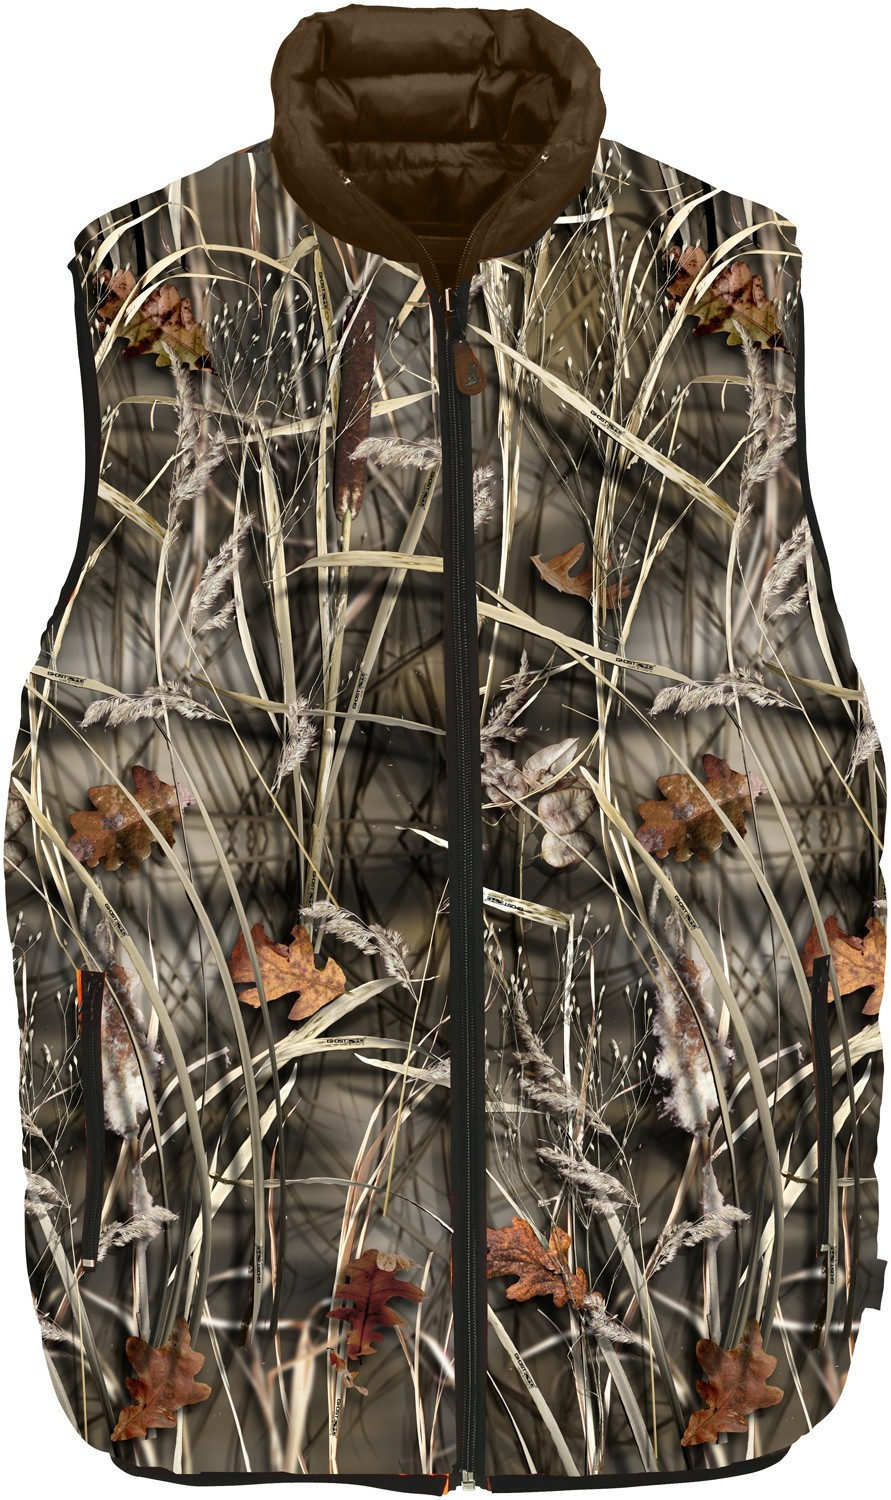 Wet Ghostcamo Réversible Gilet Marron Percussion Gilets Ouatiné pq4FU1